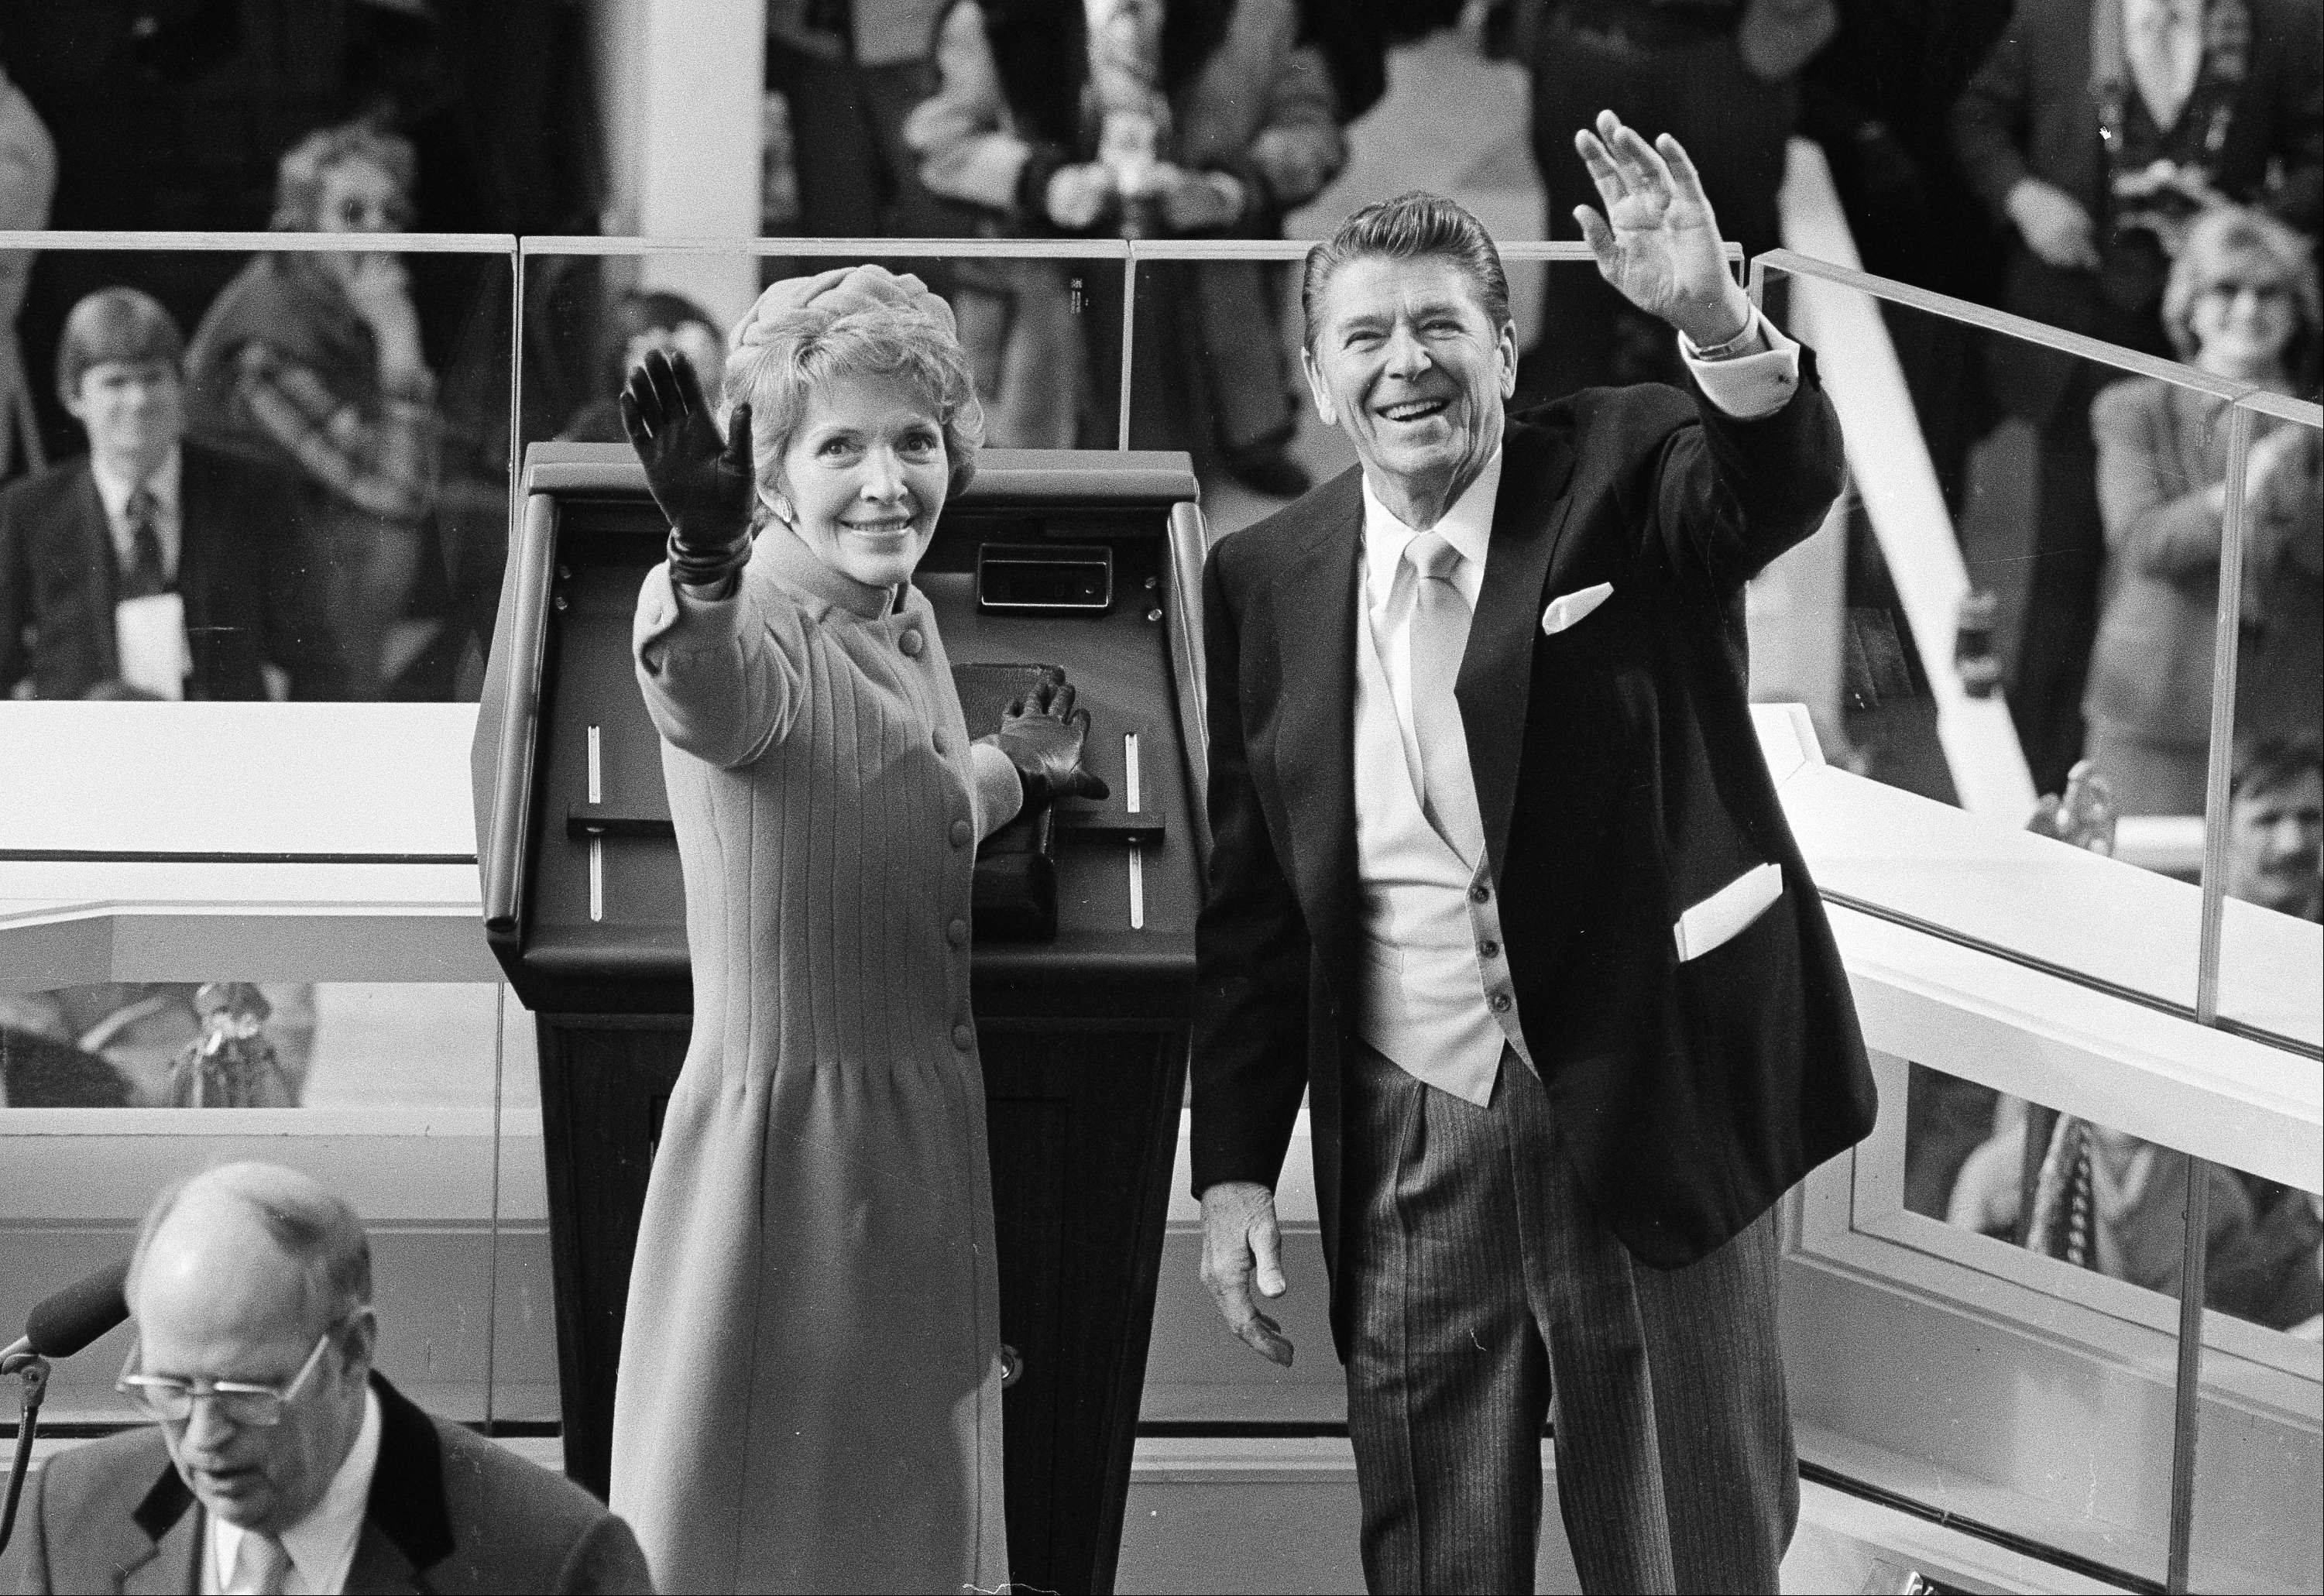 President Ronald Reagan and first lady Nancy Reagan wave to onlookers at the Capitol building as they stand at the podium in Washington following the swearing in ceremony, Jan. 20, 1981.